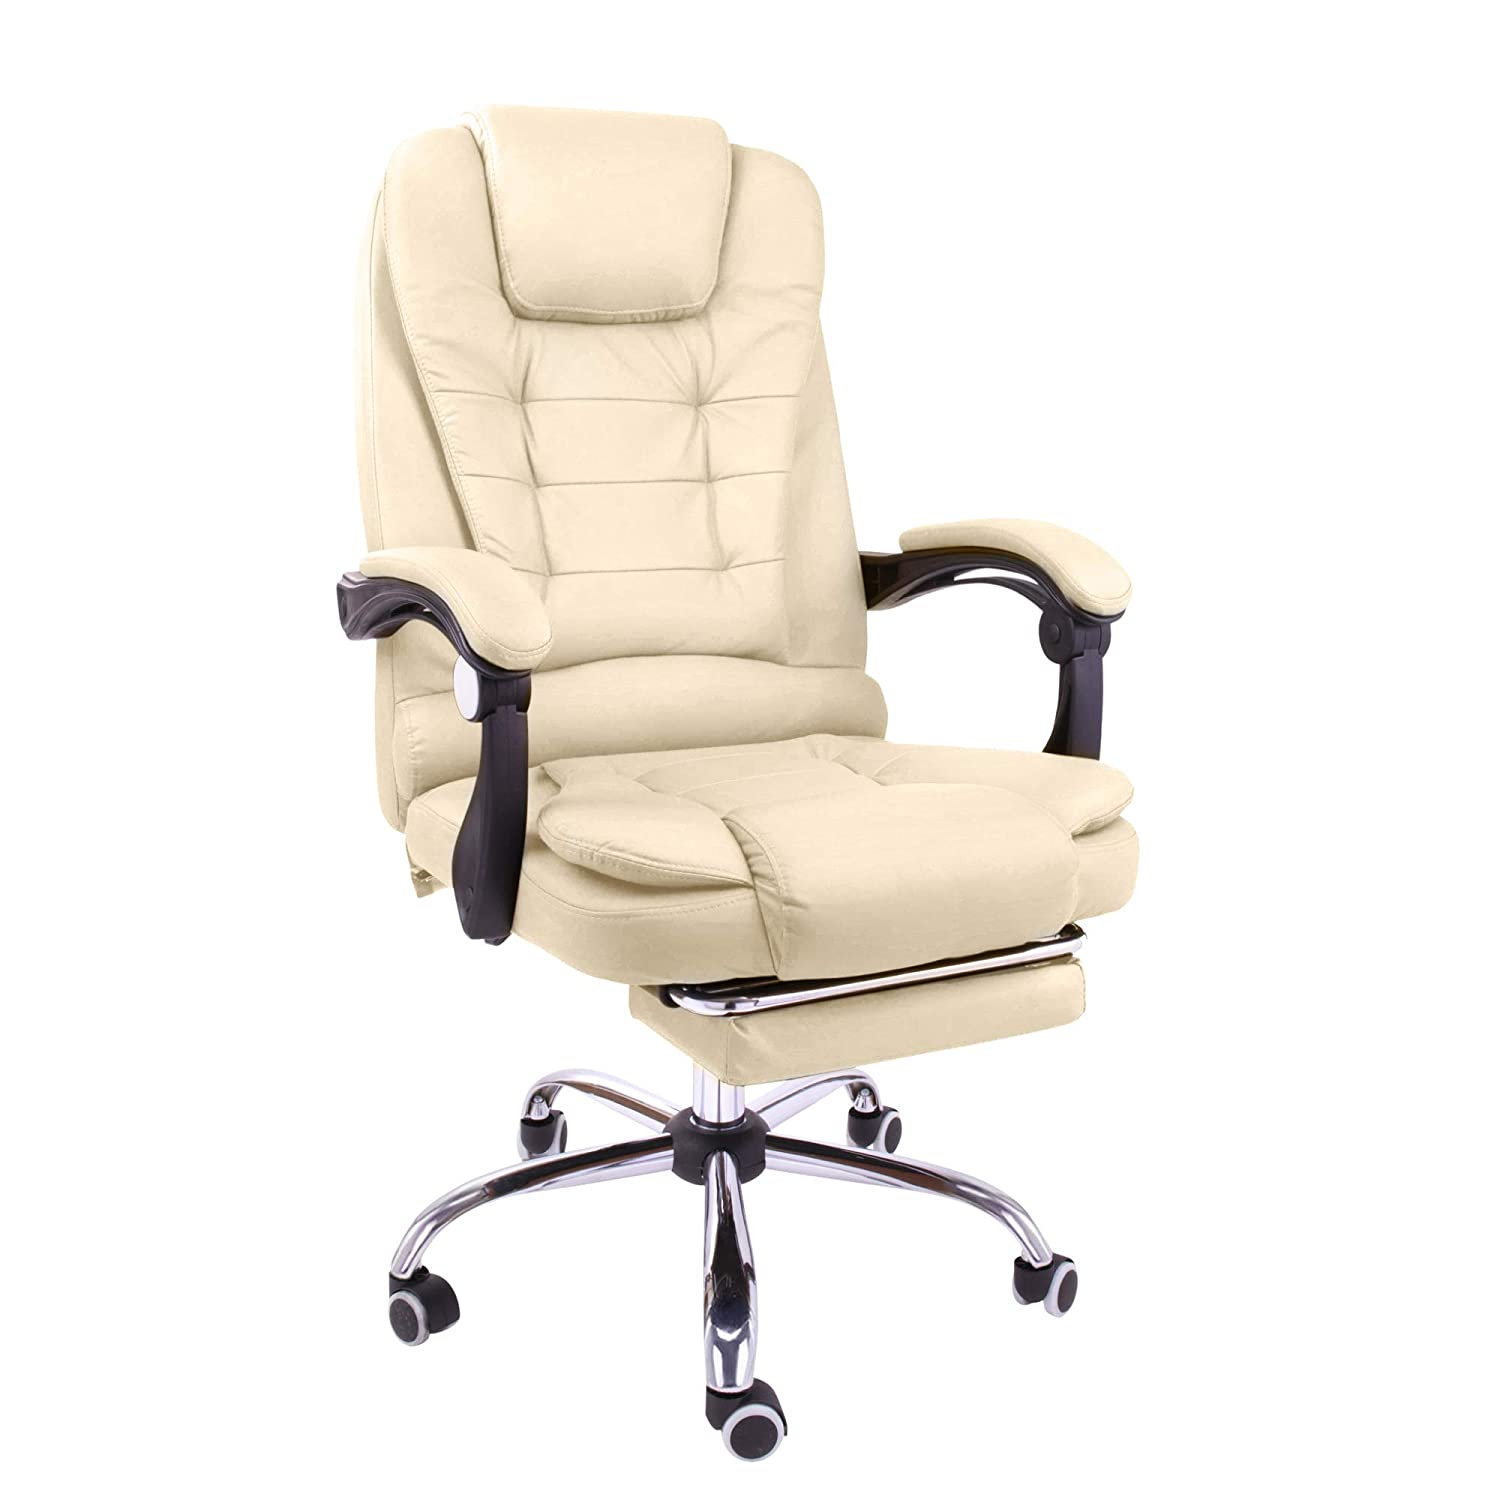 Halter Reclining Leather Office Chair - Modern Executive Adjustable Rolling Swivel Chair Headrest with Retractable Footrest (White)